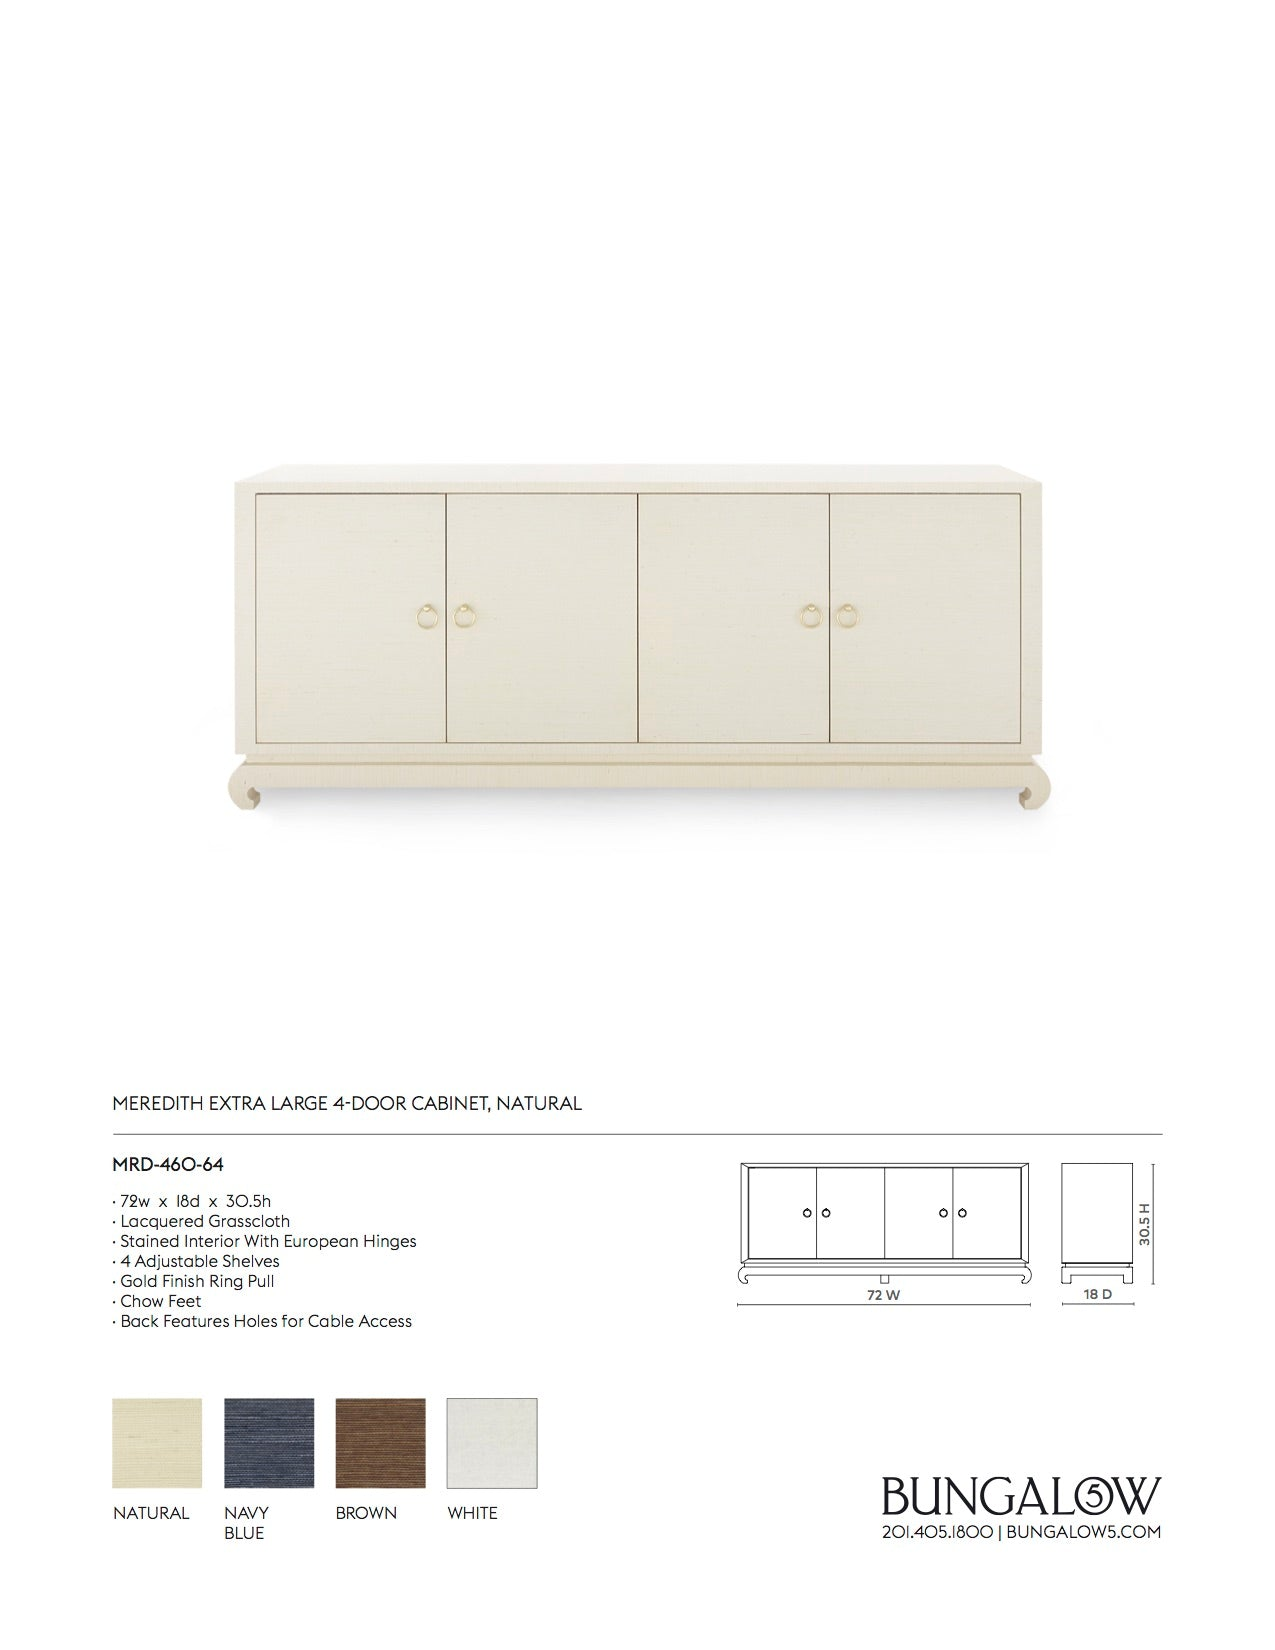 Bungalow 5 Meredith Extra Large 4 Door Cabinet Natural Tearsheet